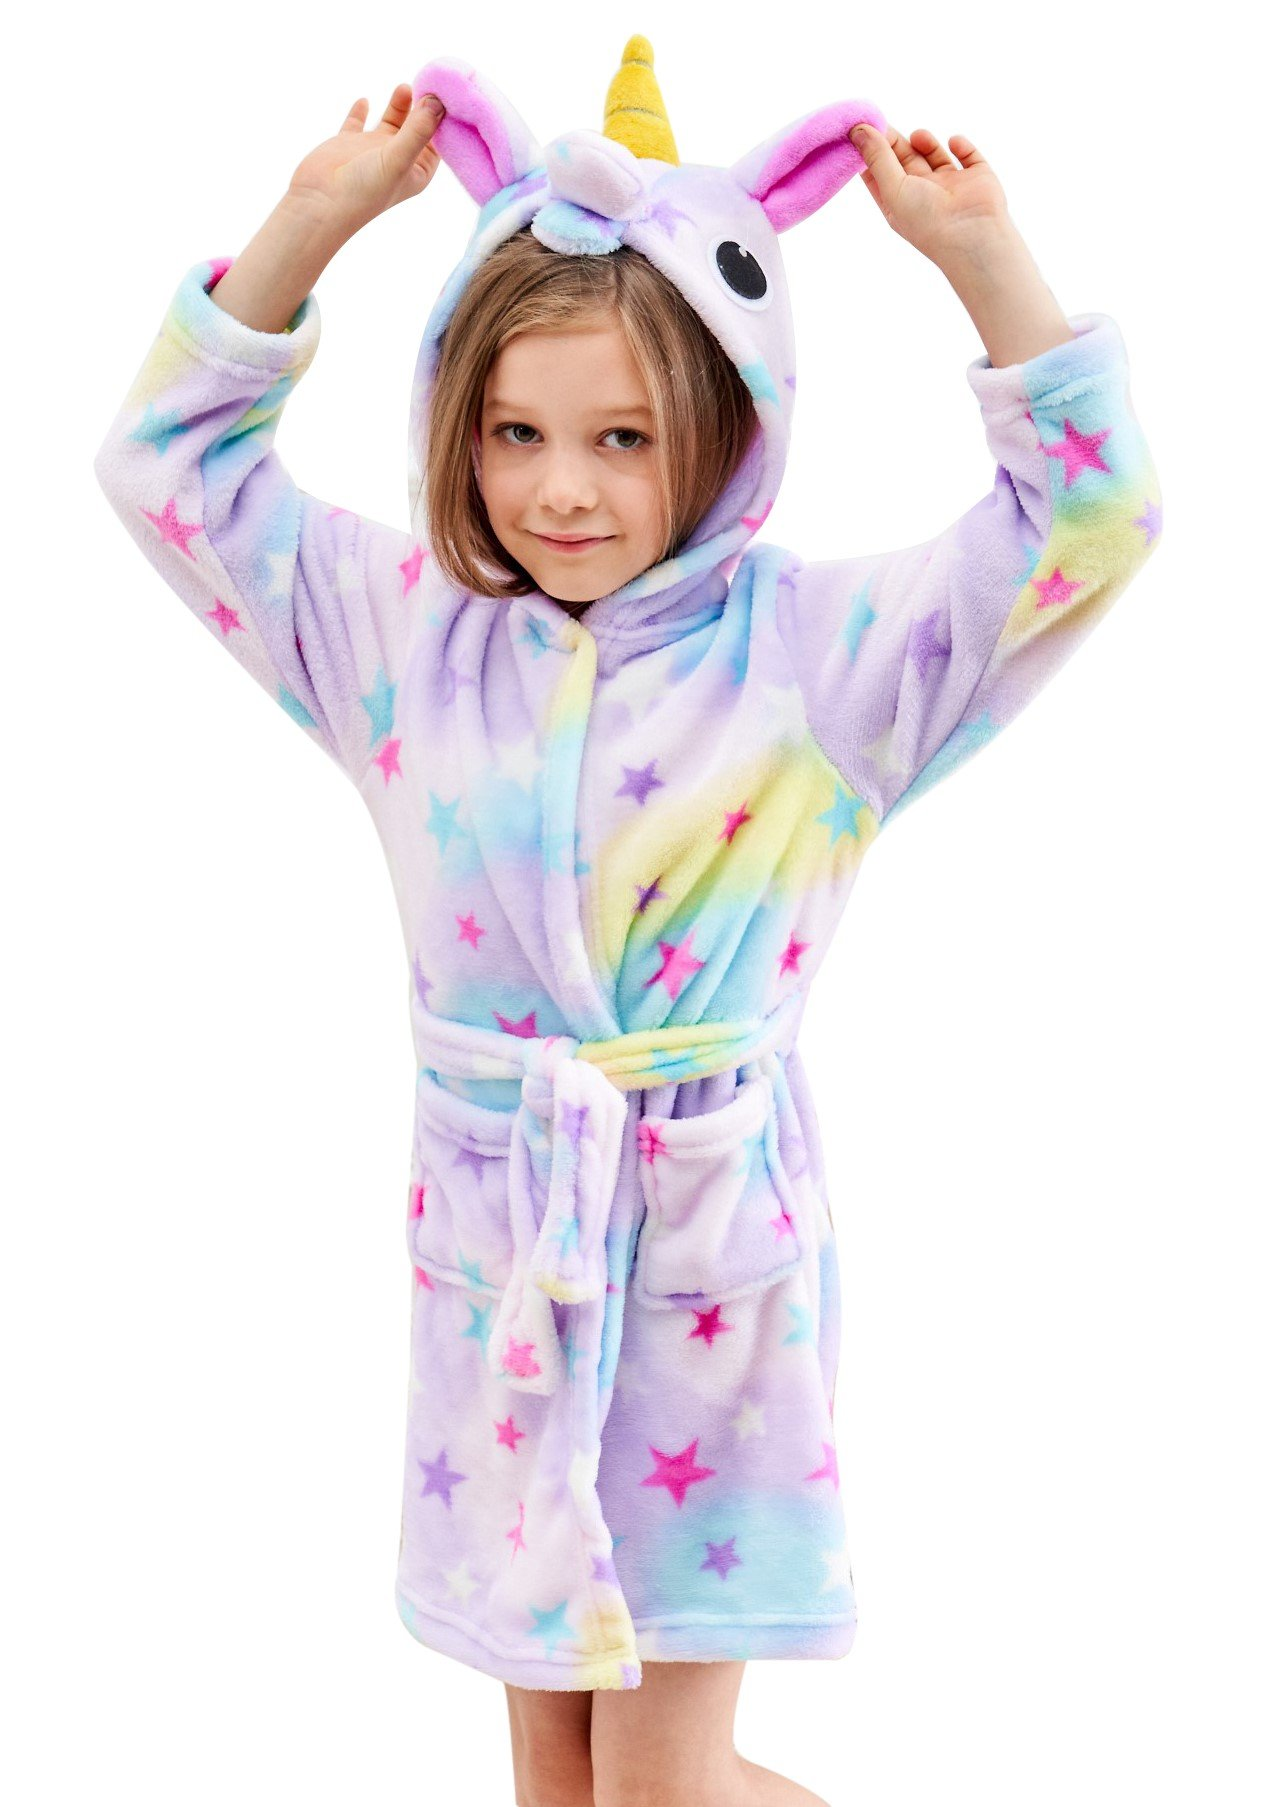 Soft Unicorn Hooded Bathrobe - Unicorn Gifts for Girls (2-4 Years, Starry Sleepwear)